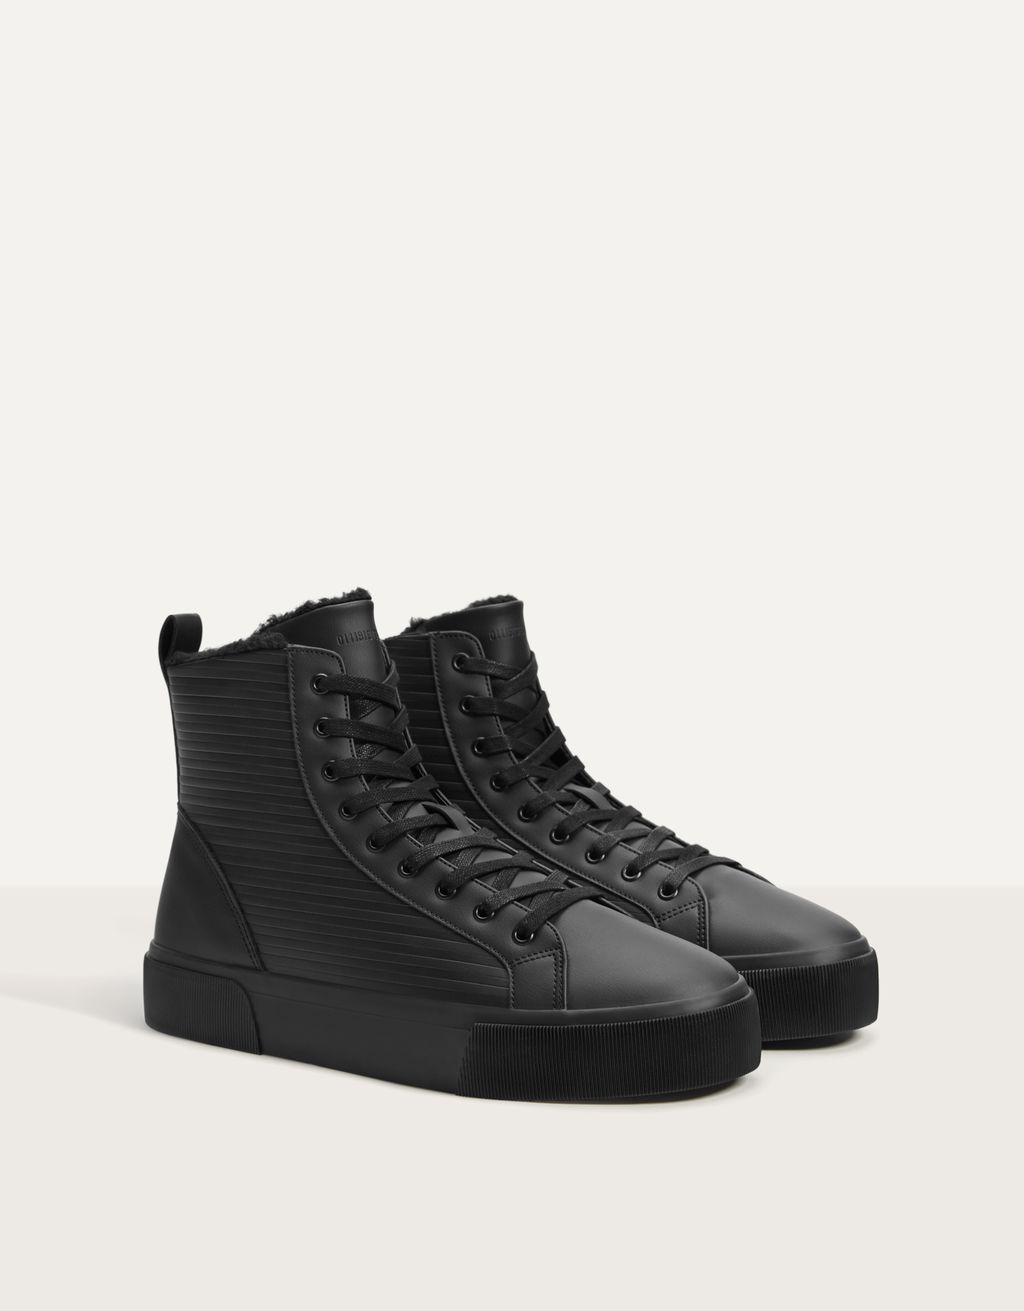 Men's lined high-top trainers